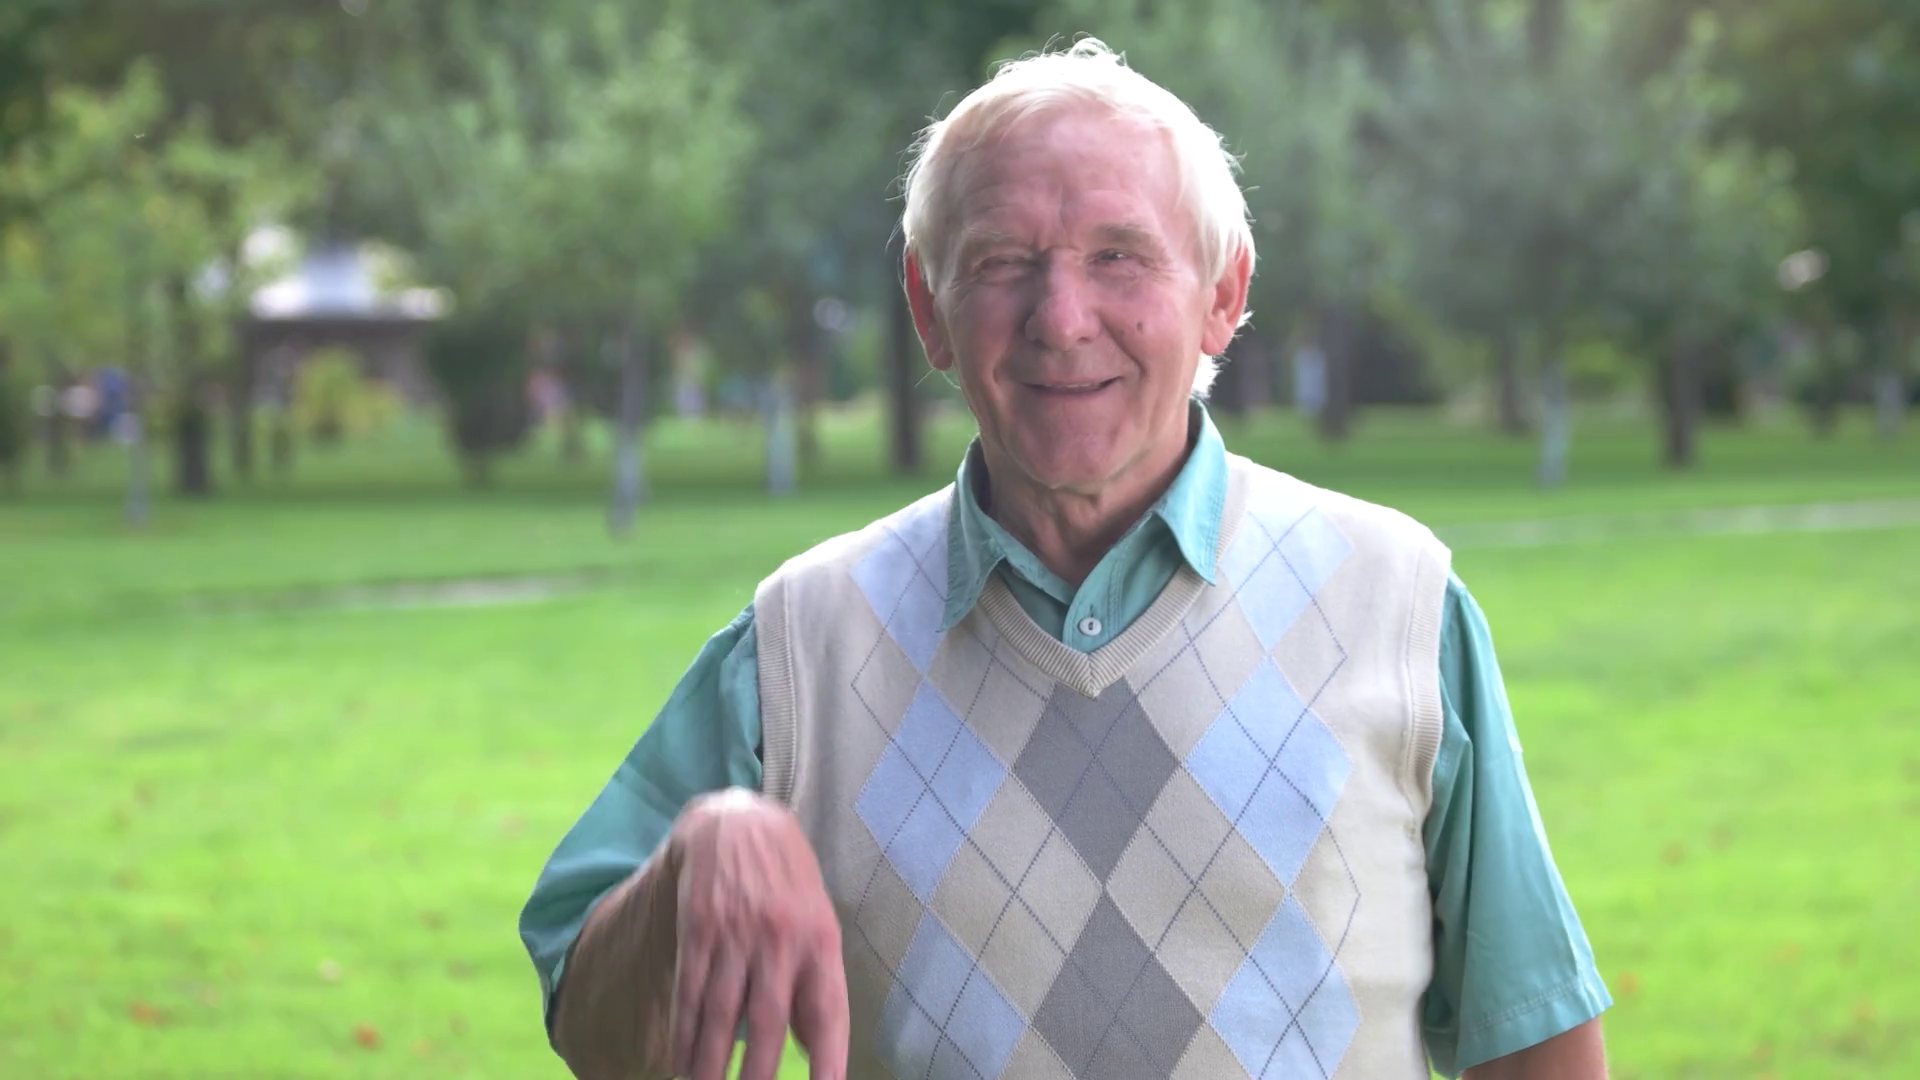 Funny Old Man Laughing Stock Video Footage - Videoblocks